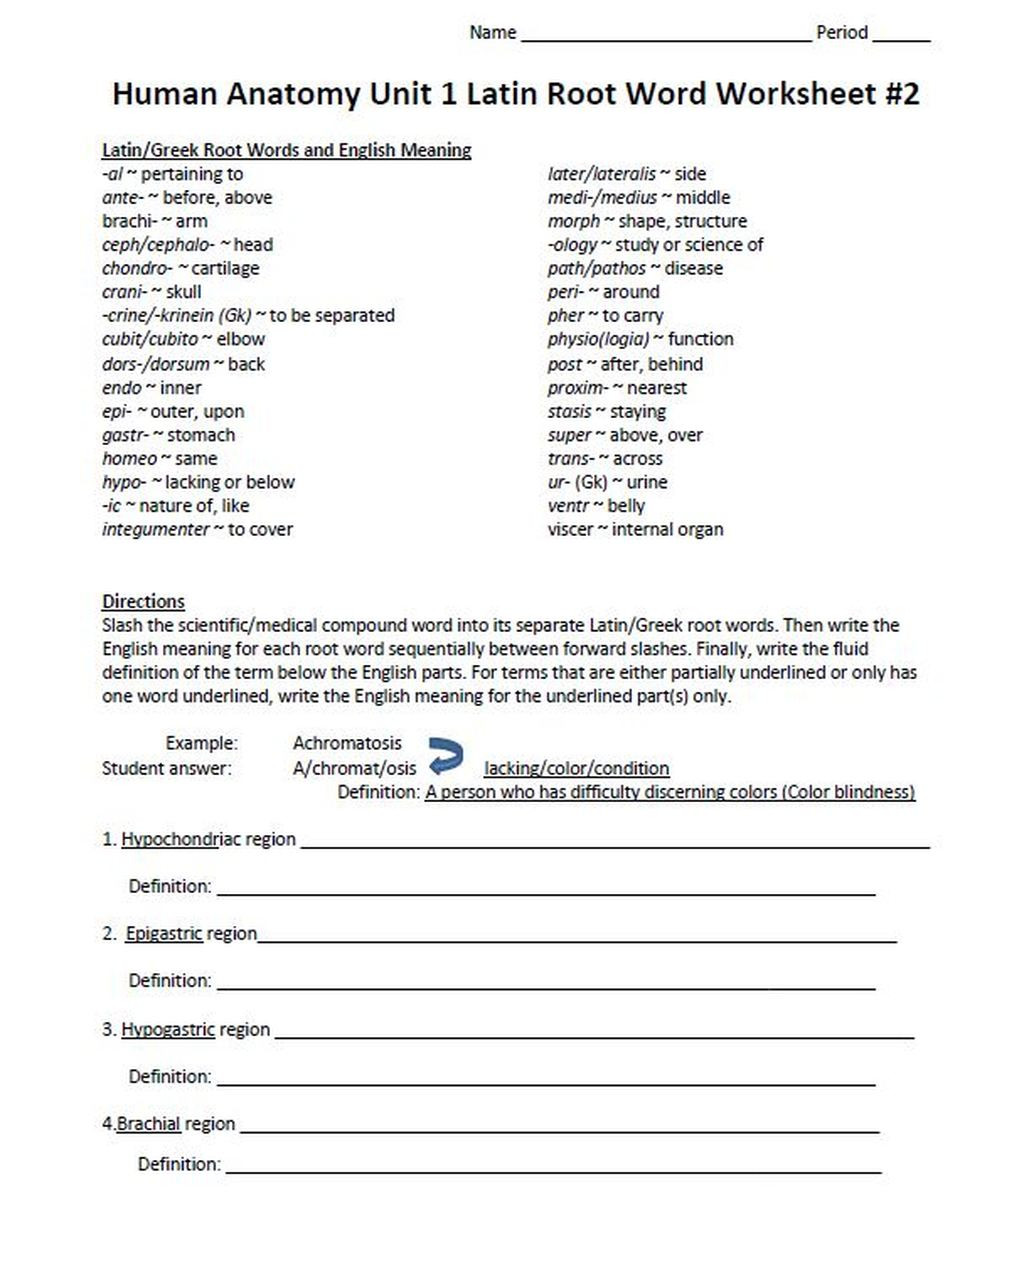 Root Word Worksheets 4th Grade Latin Root Word Worksheet Set for Unit E Human Anatomy & Physiology